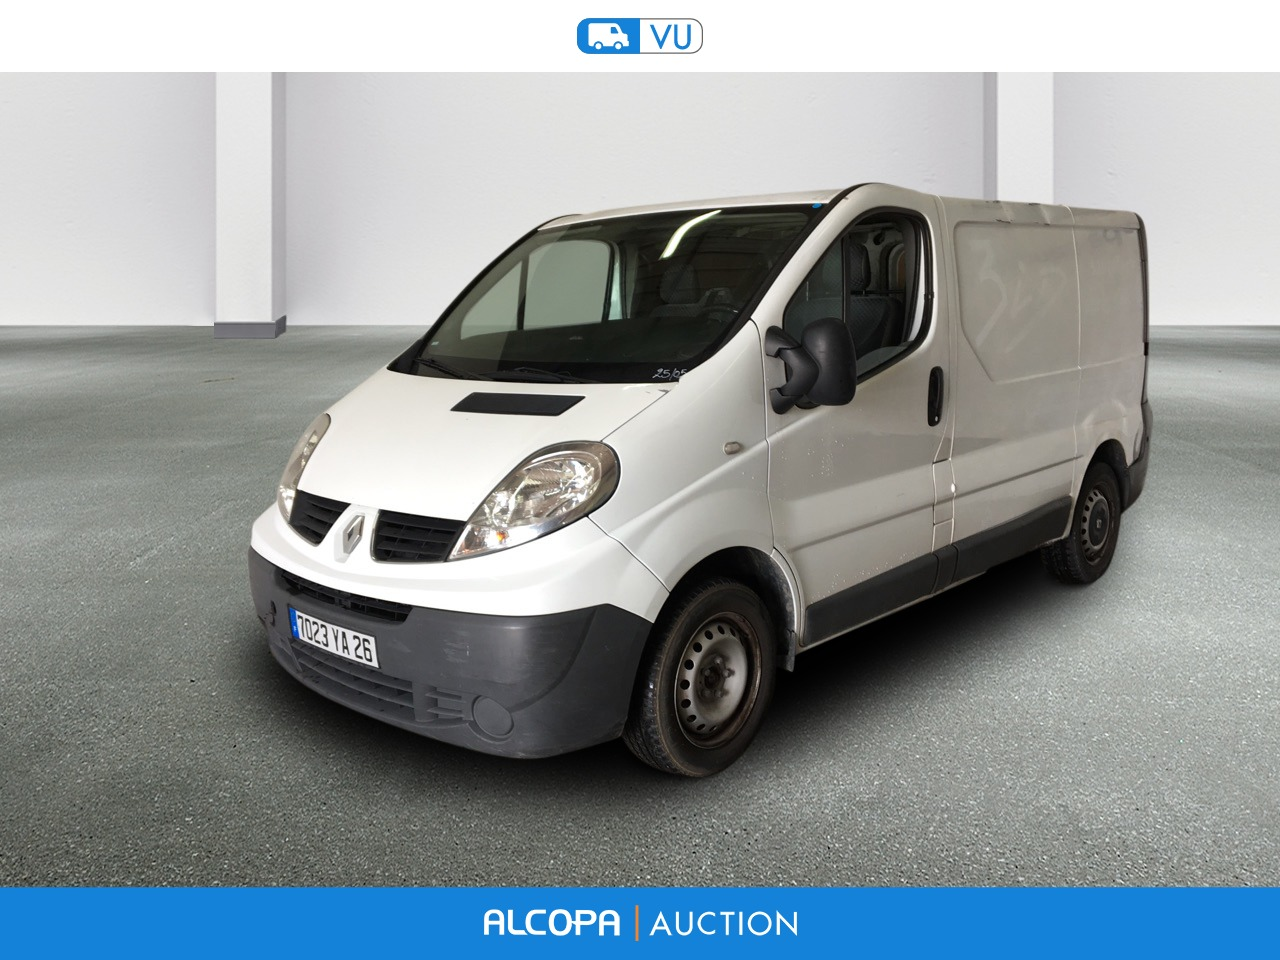 renault trafic fourgon trafic fgn 2 0 dci 90 l1h1 1000 kg confort alcopa auction. Black Bedroom Furniture Sets. Home Design Ideas